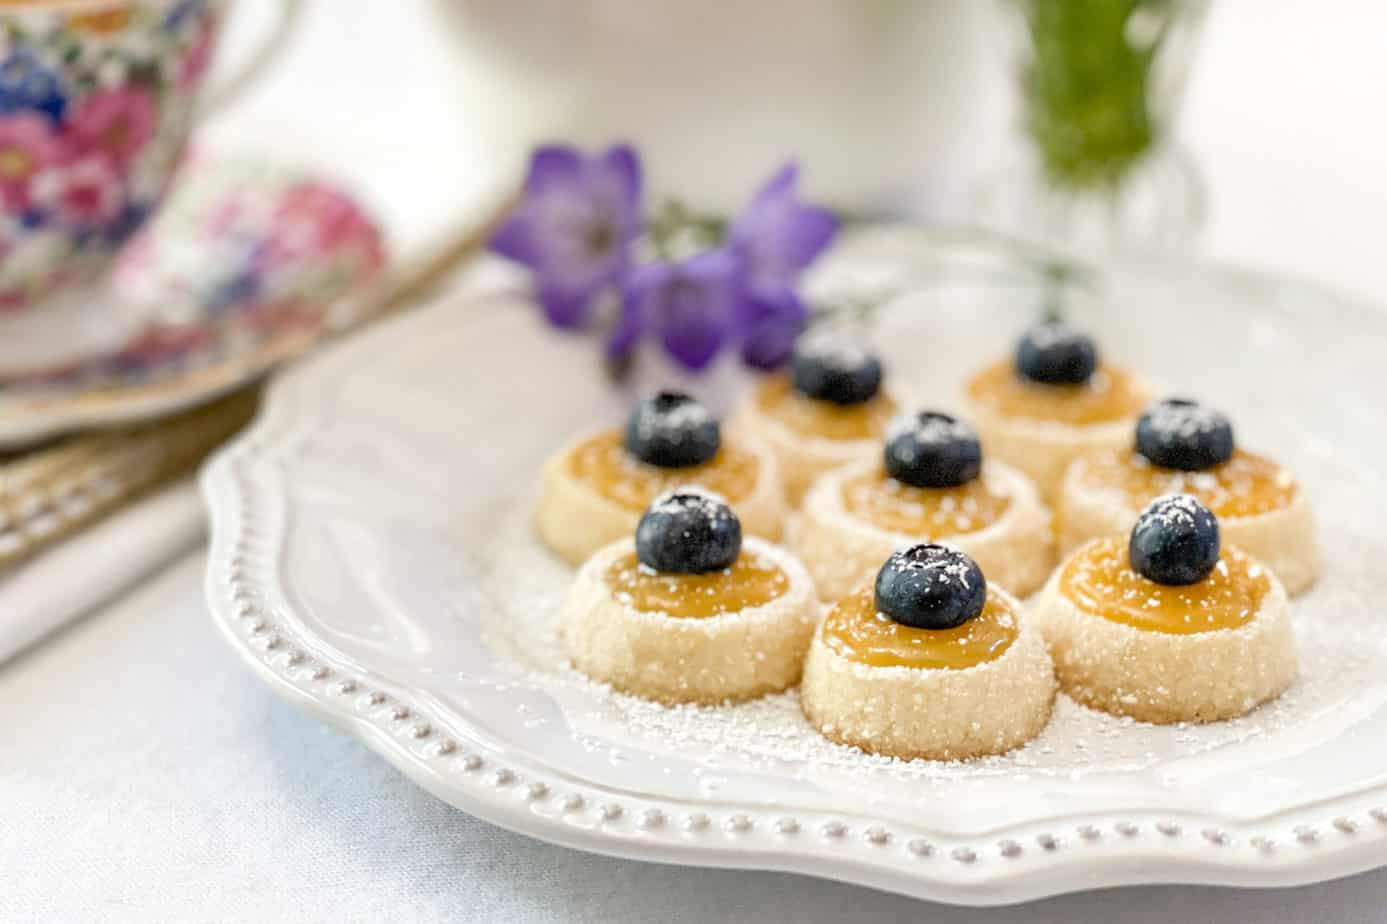 Shortbread Tea Cookies with Lemon Curd on a Tea Plate with Flowers